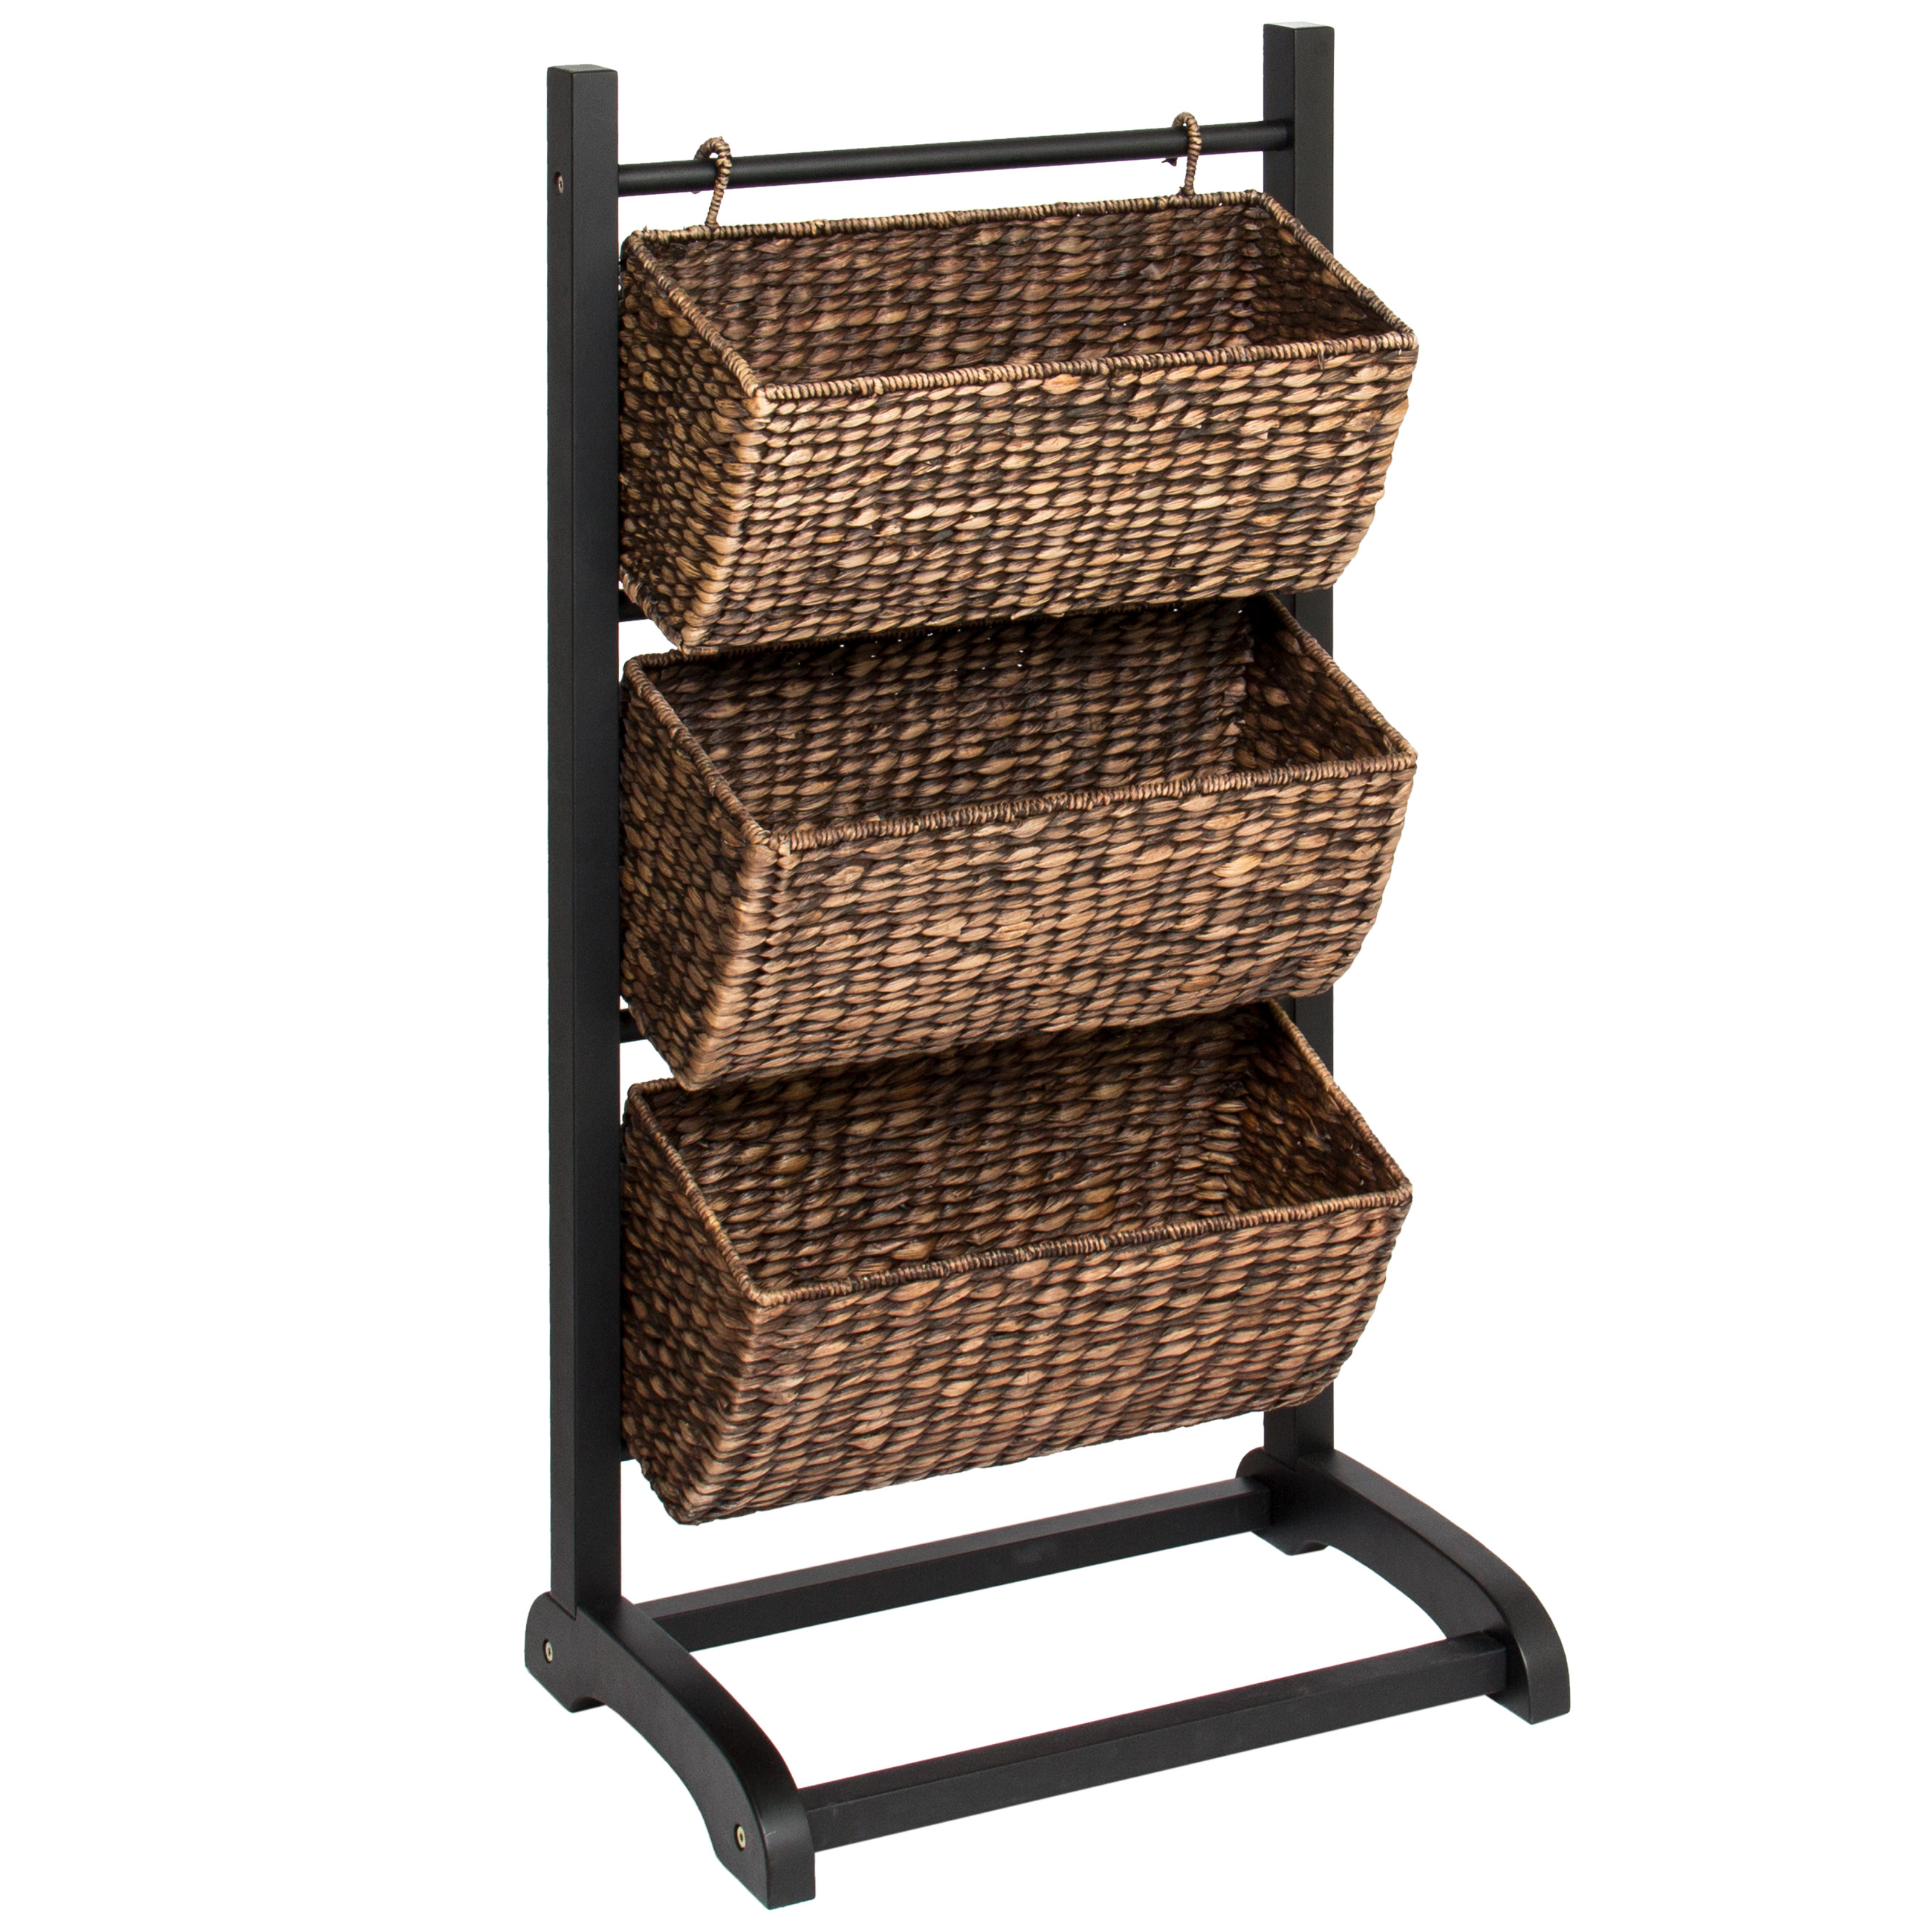 Best Choice Products Water Hyacinth 3 Tier Storage Cubby Metal Shelf - Brushed Espresso